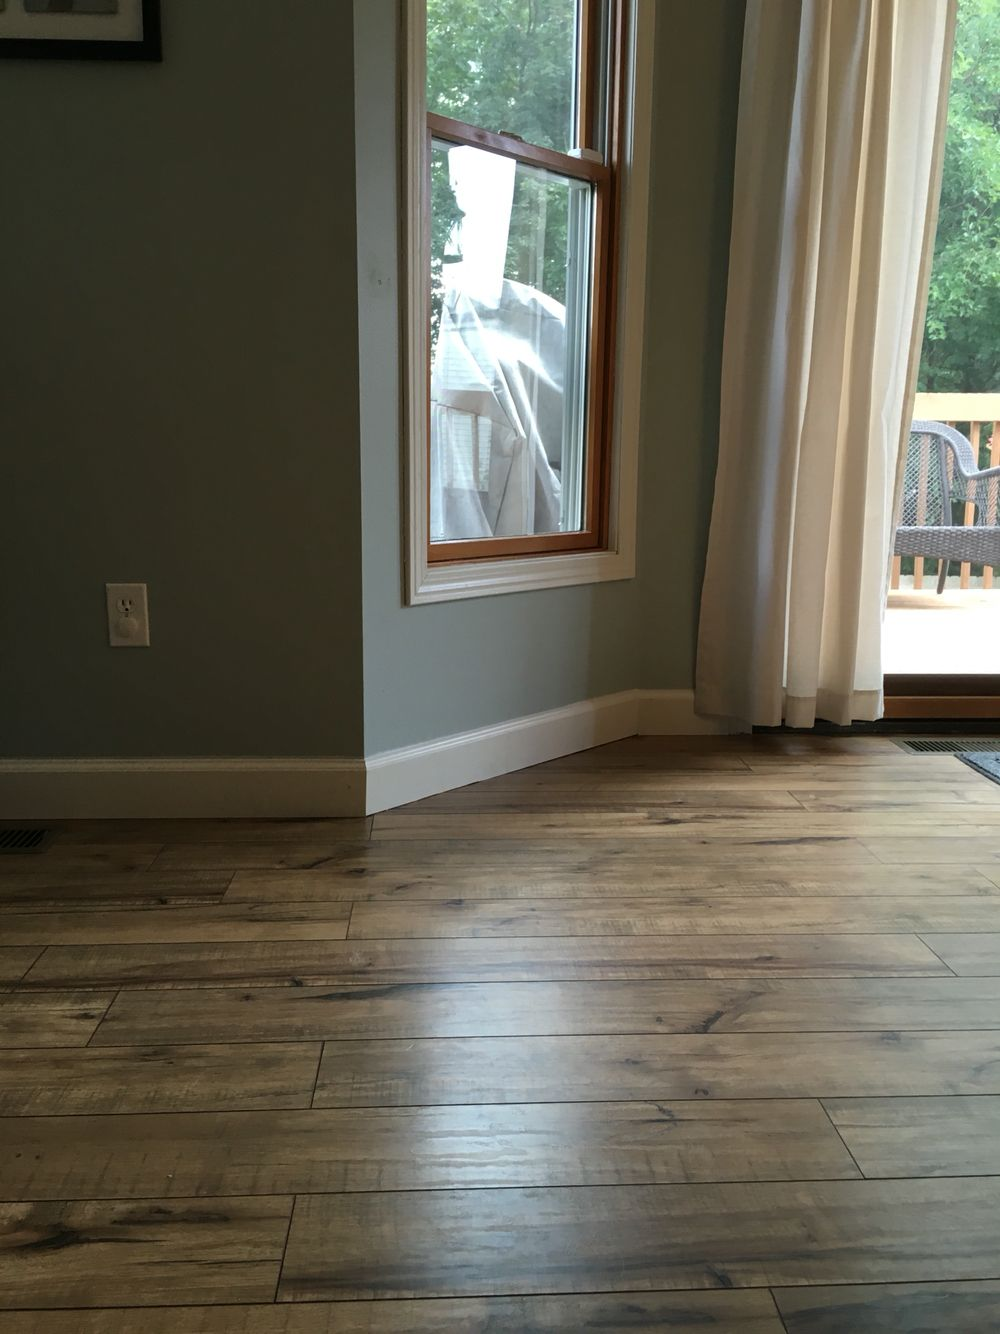 Shaw Laminate Floor 12mm Lumberjack Hickory Wood Floors Wide Plank Flooring Laminate Flooring